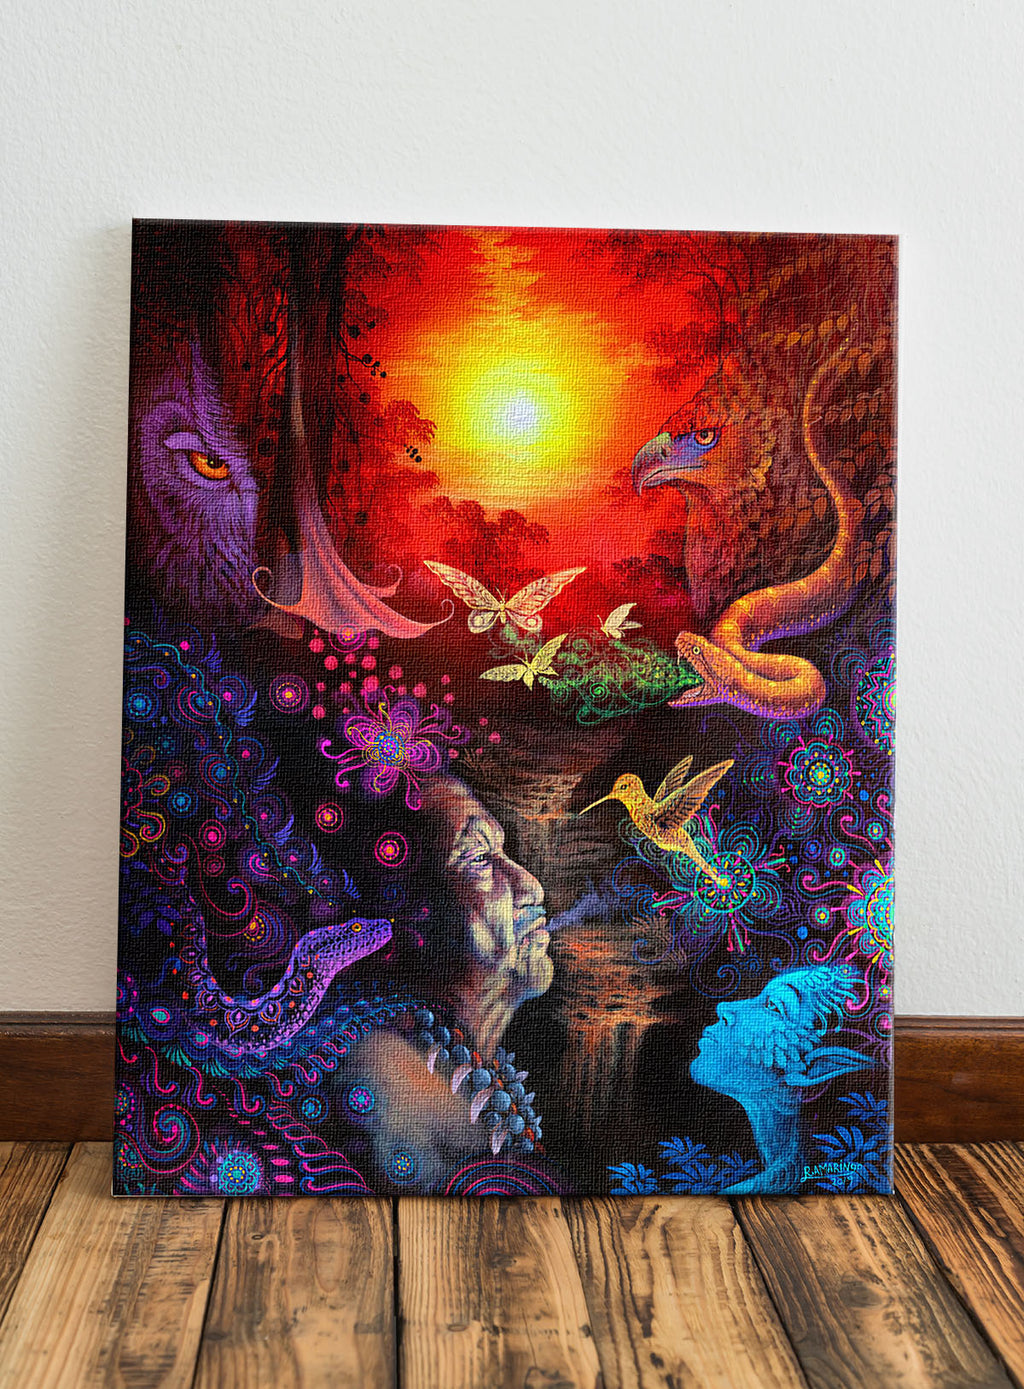 In the Shadows You See the Light: The Shaman Limited Edition Canvas Print